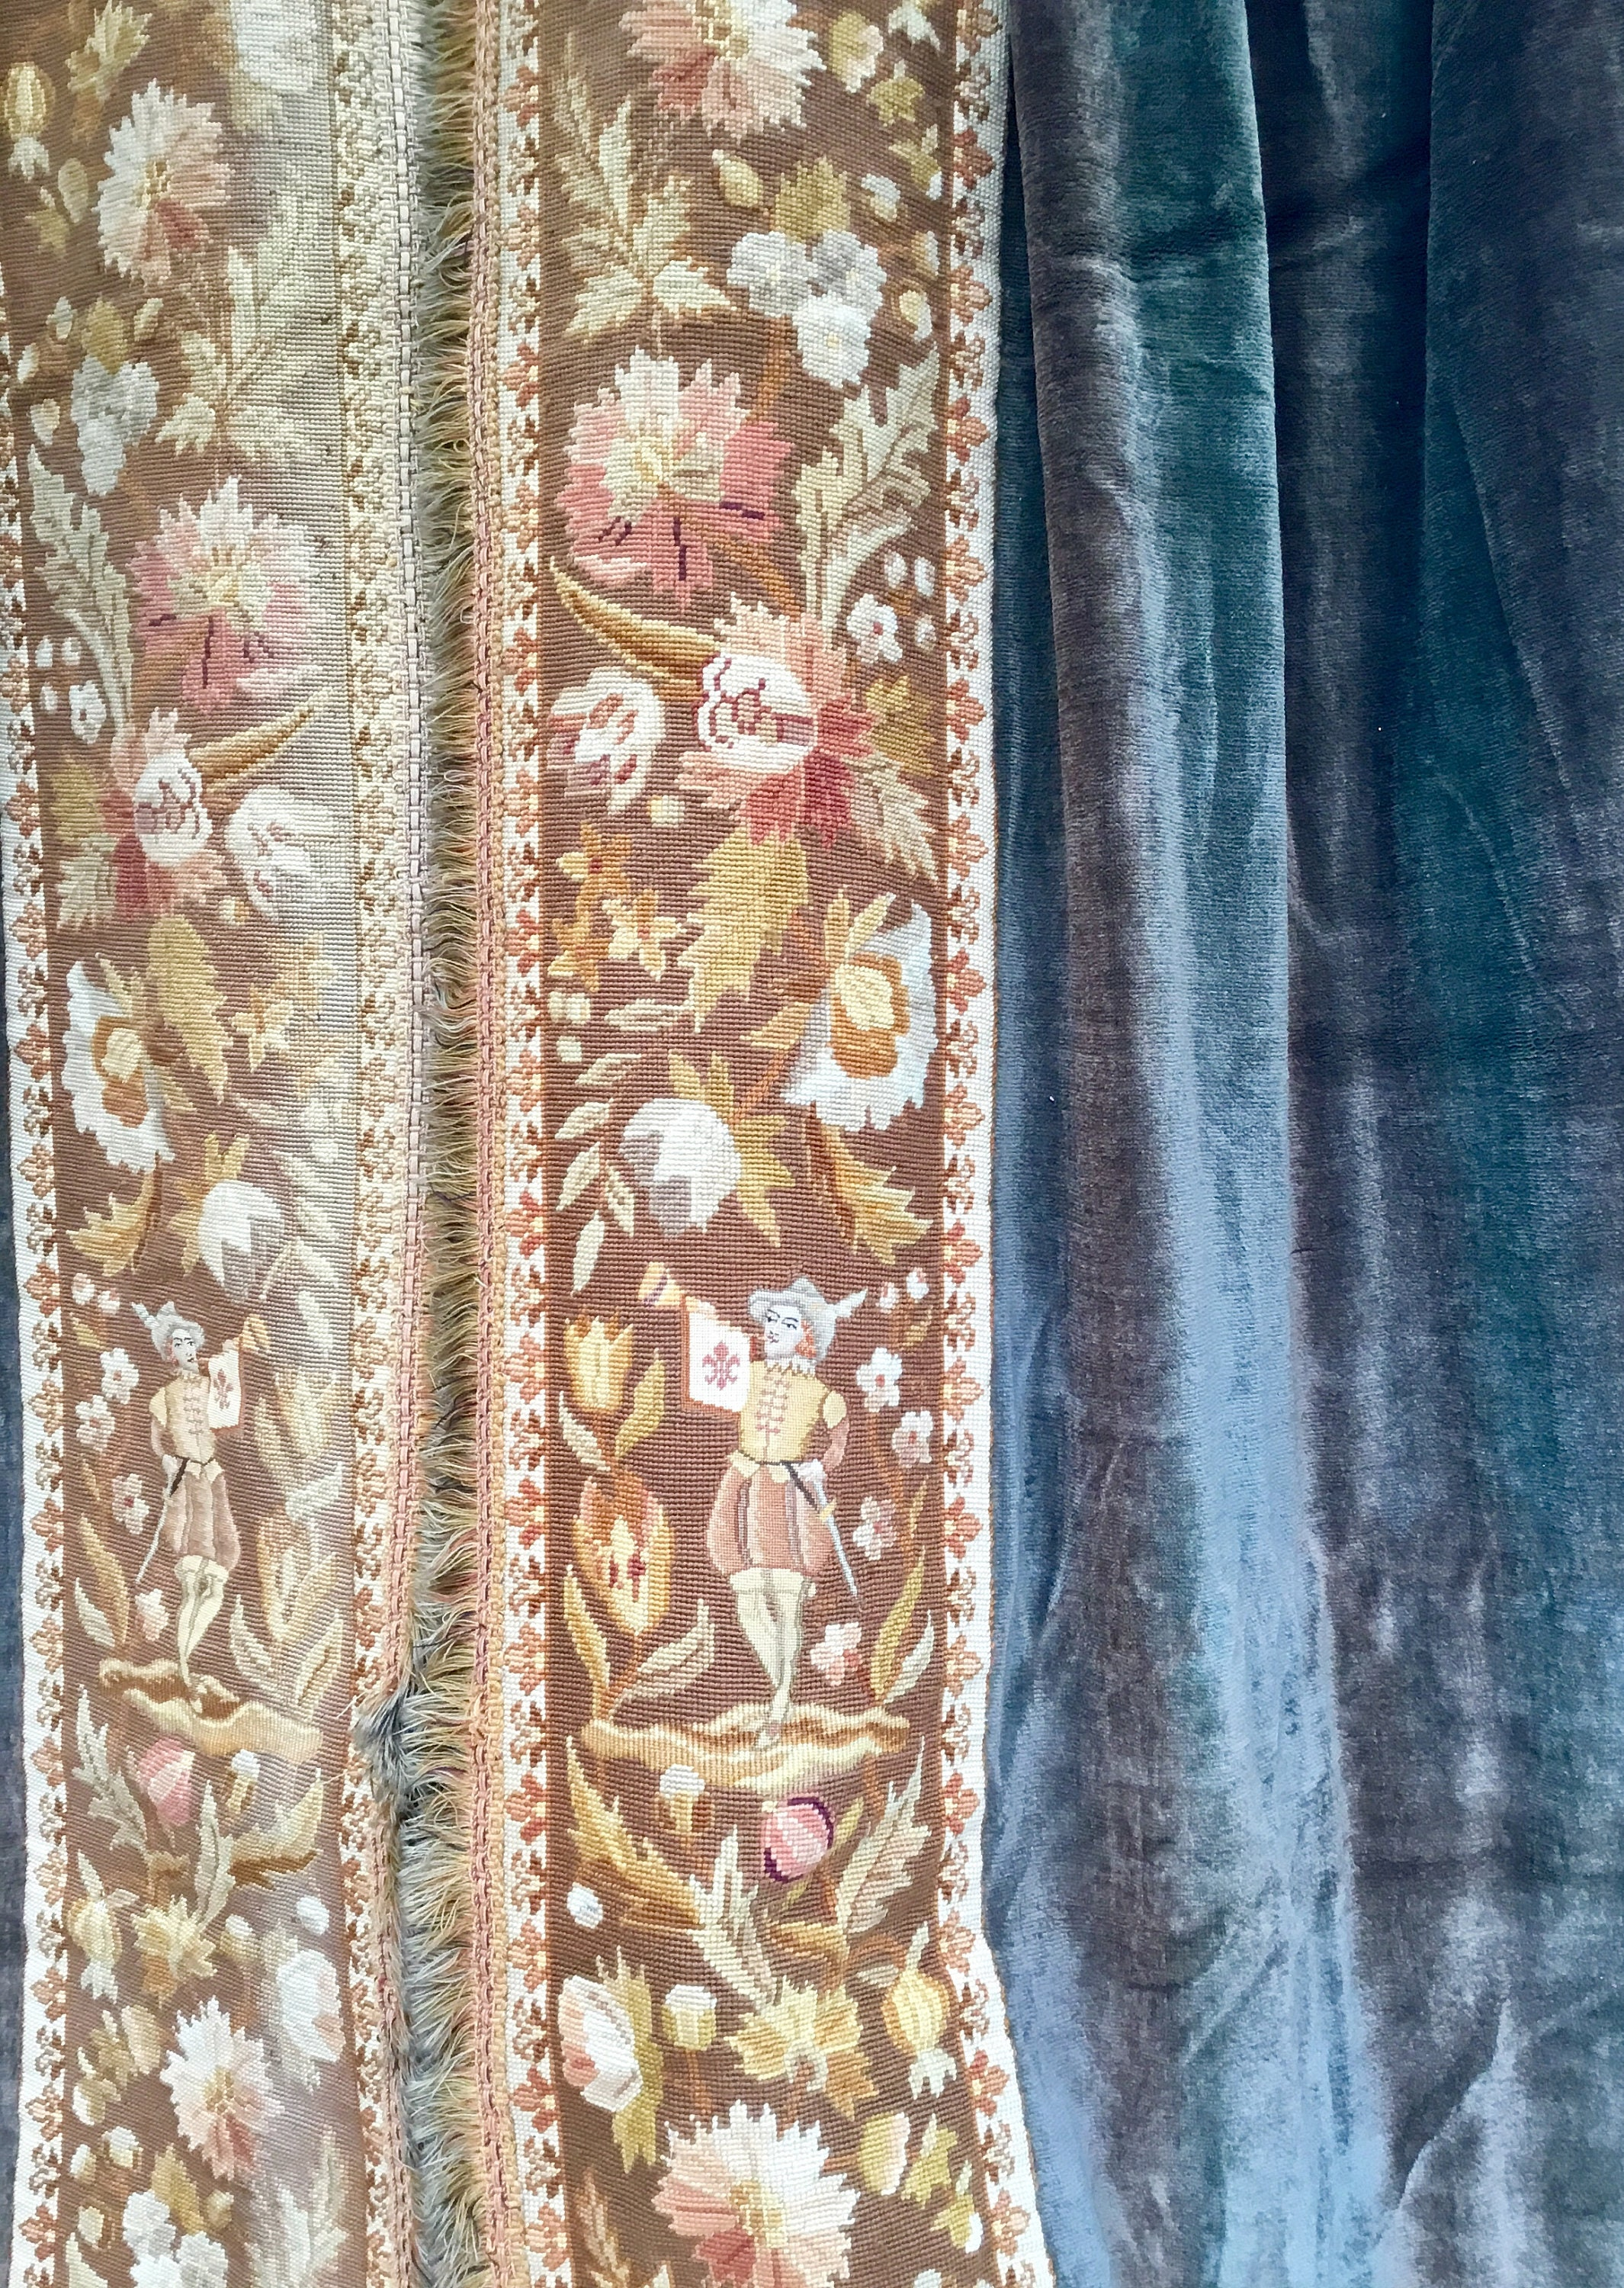 Pair Chateau curtains - Stunning pair of antique french huge